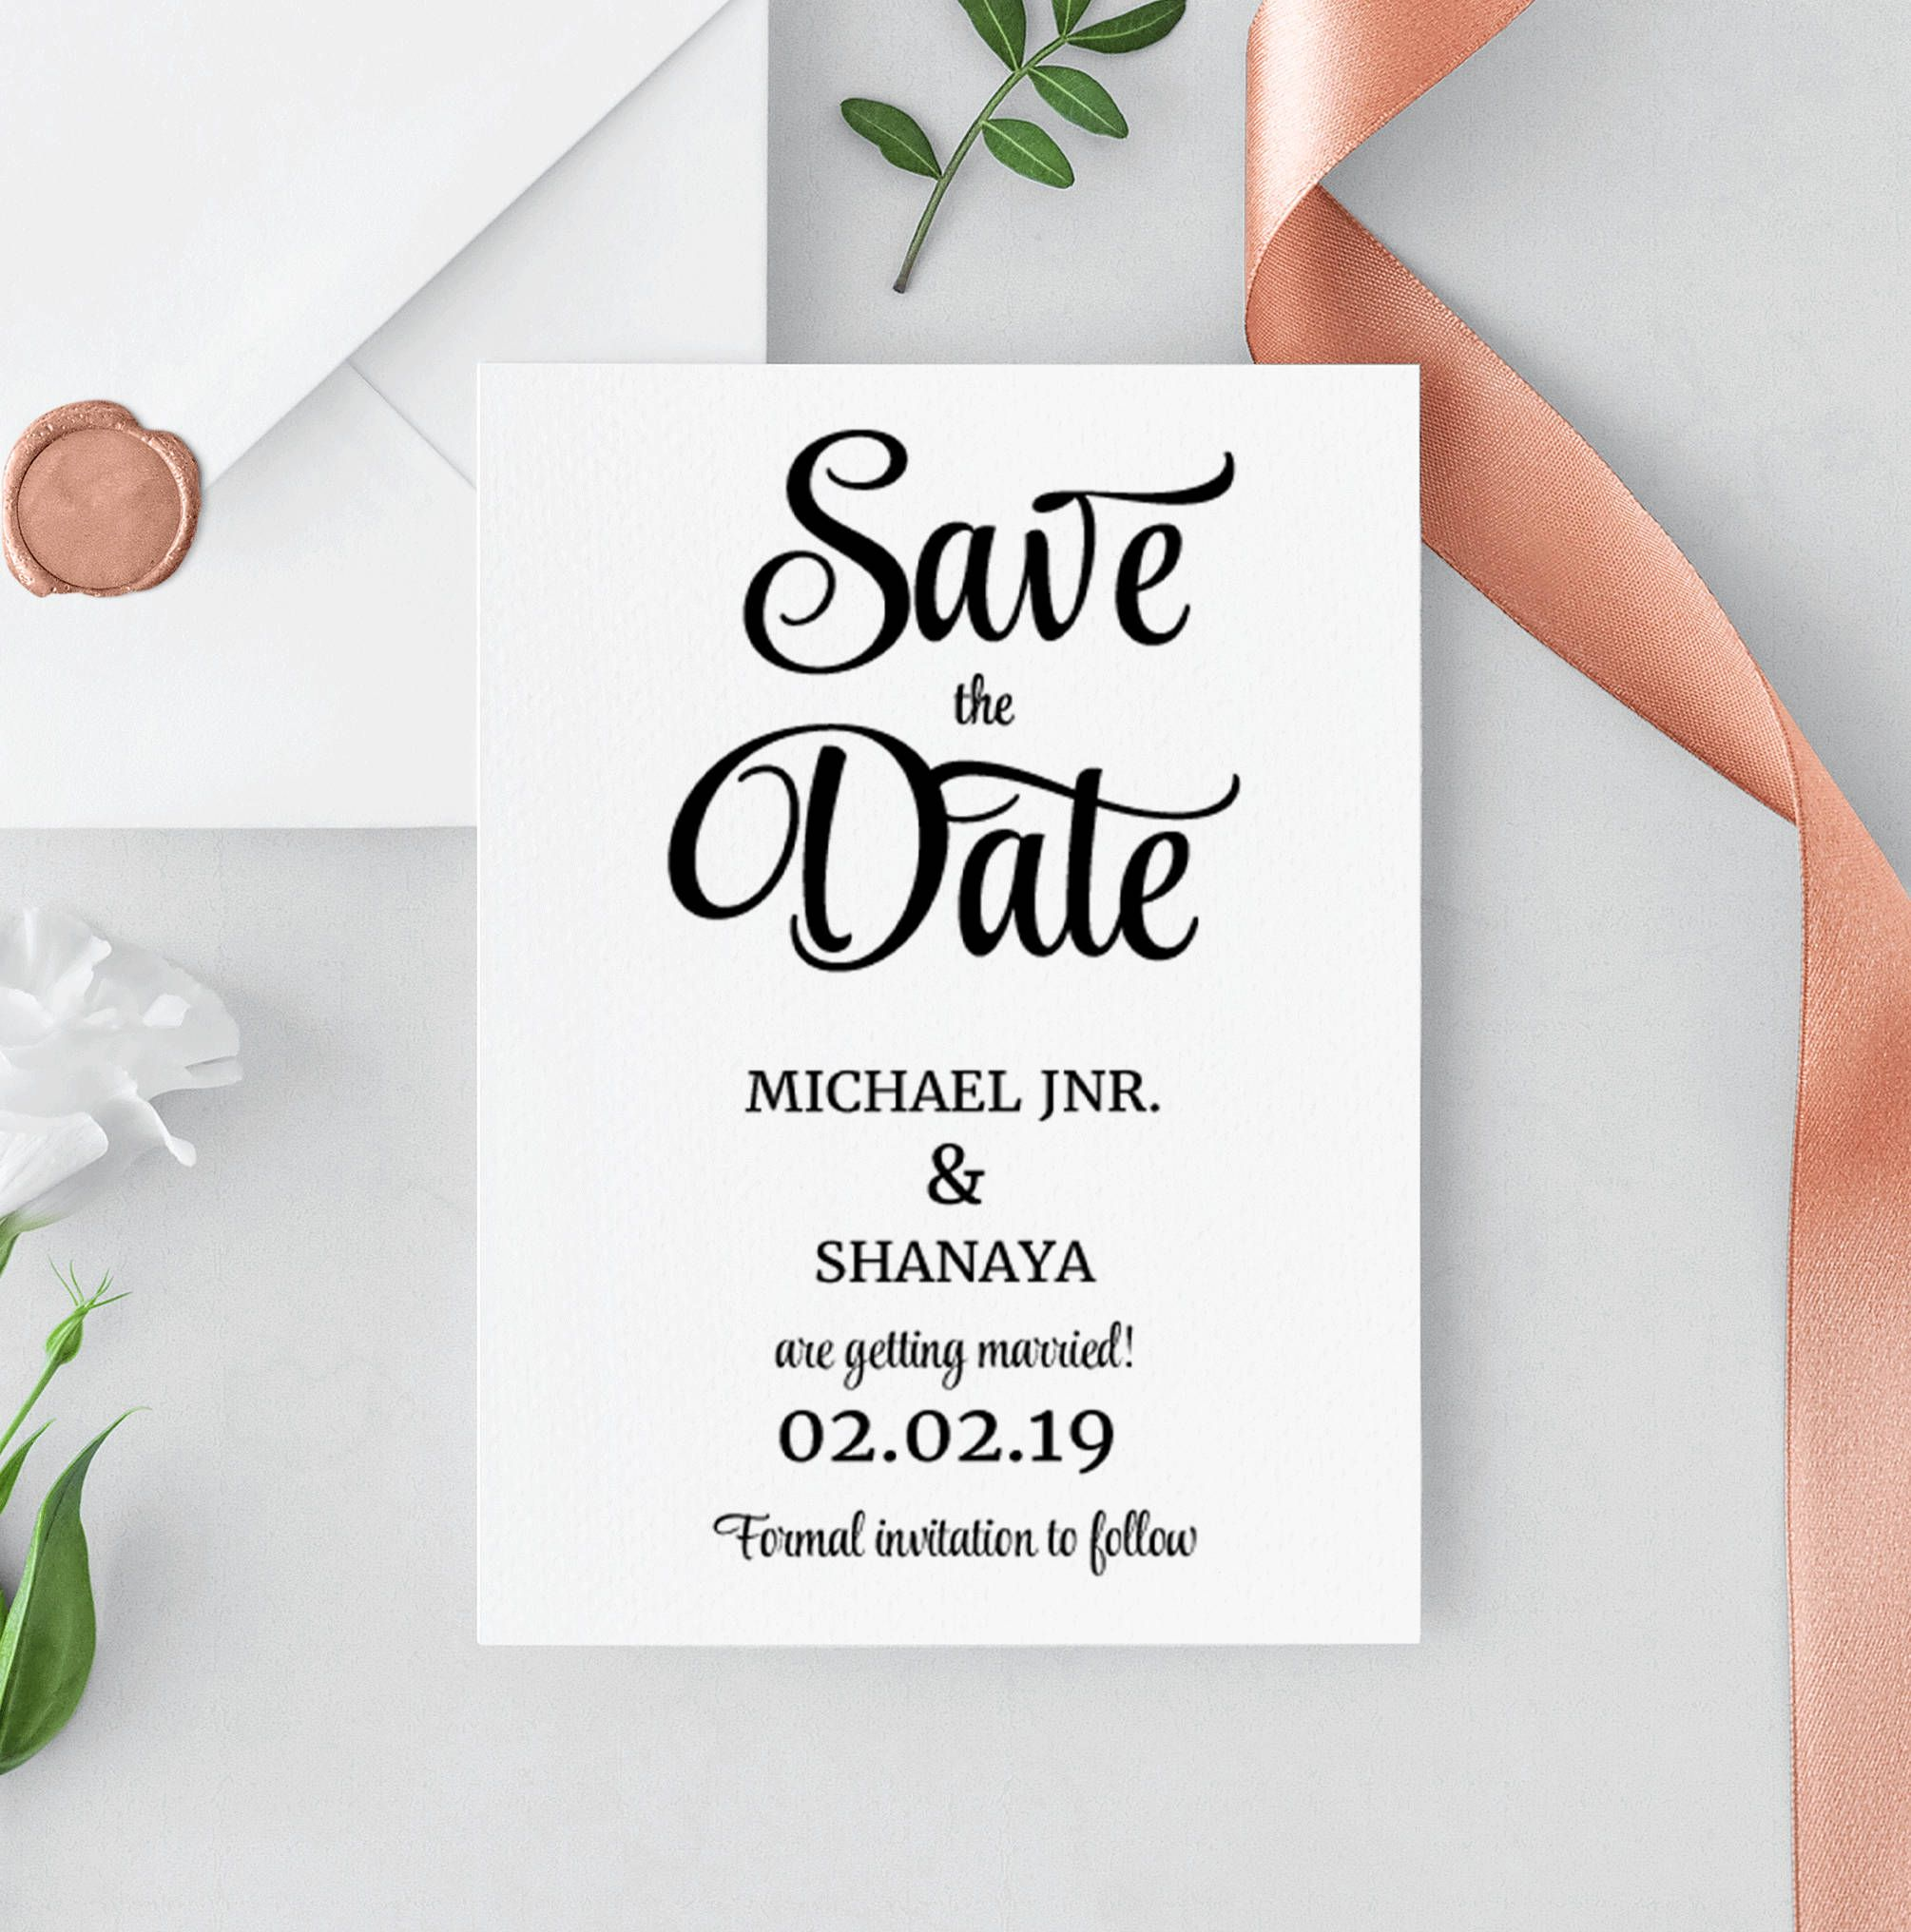 graphic relating to Printable Save the Date Templates referred to as Preserve the Day Template, Help you save the Day Printable, Preserve the